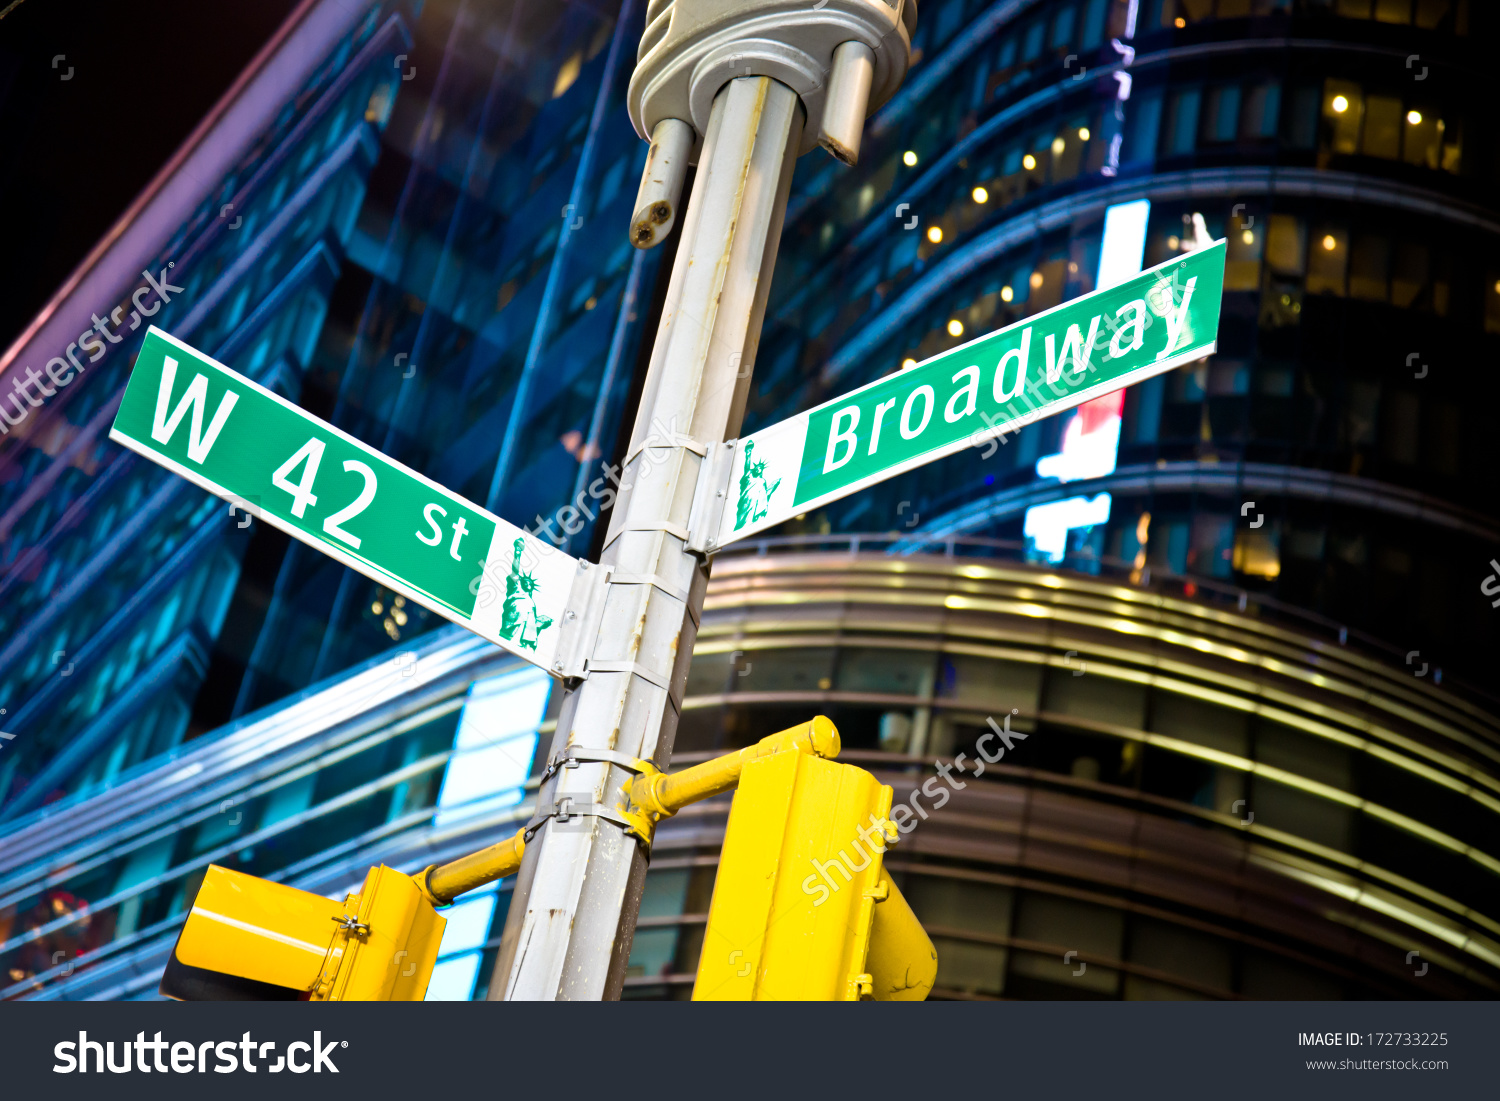 42nd Street Broadway Intersection New Yorks Stock Photo 172733225.